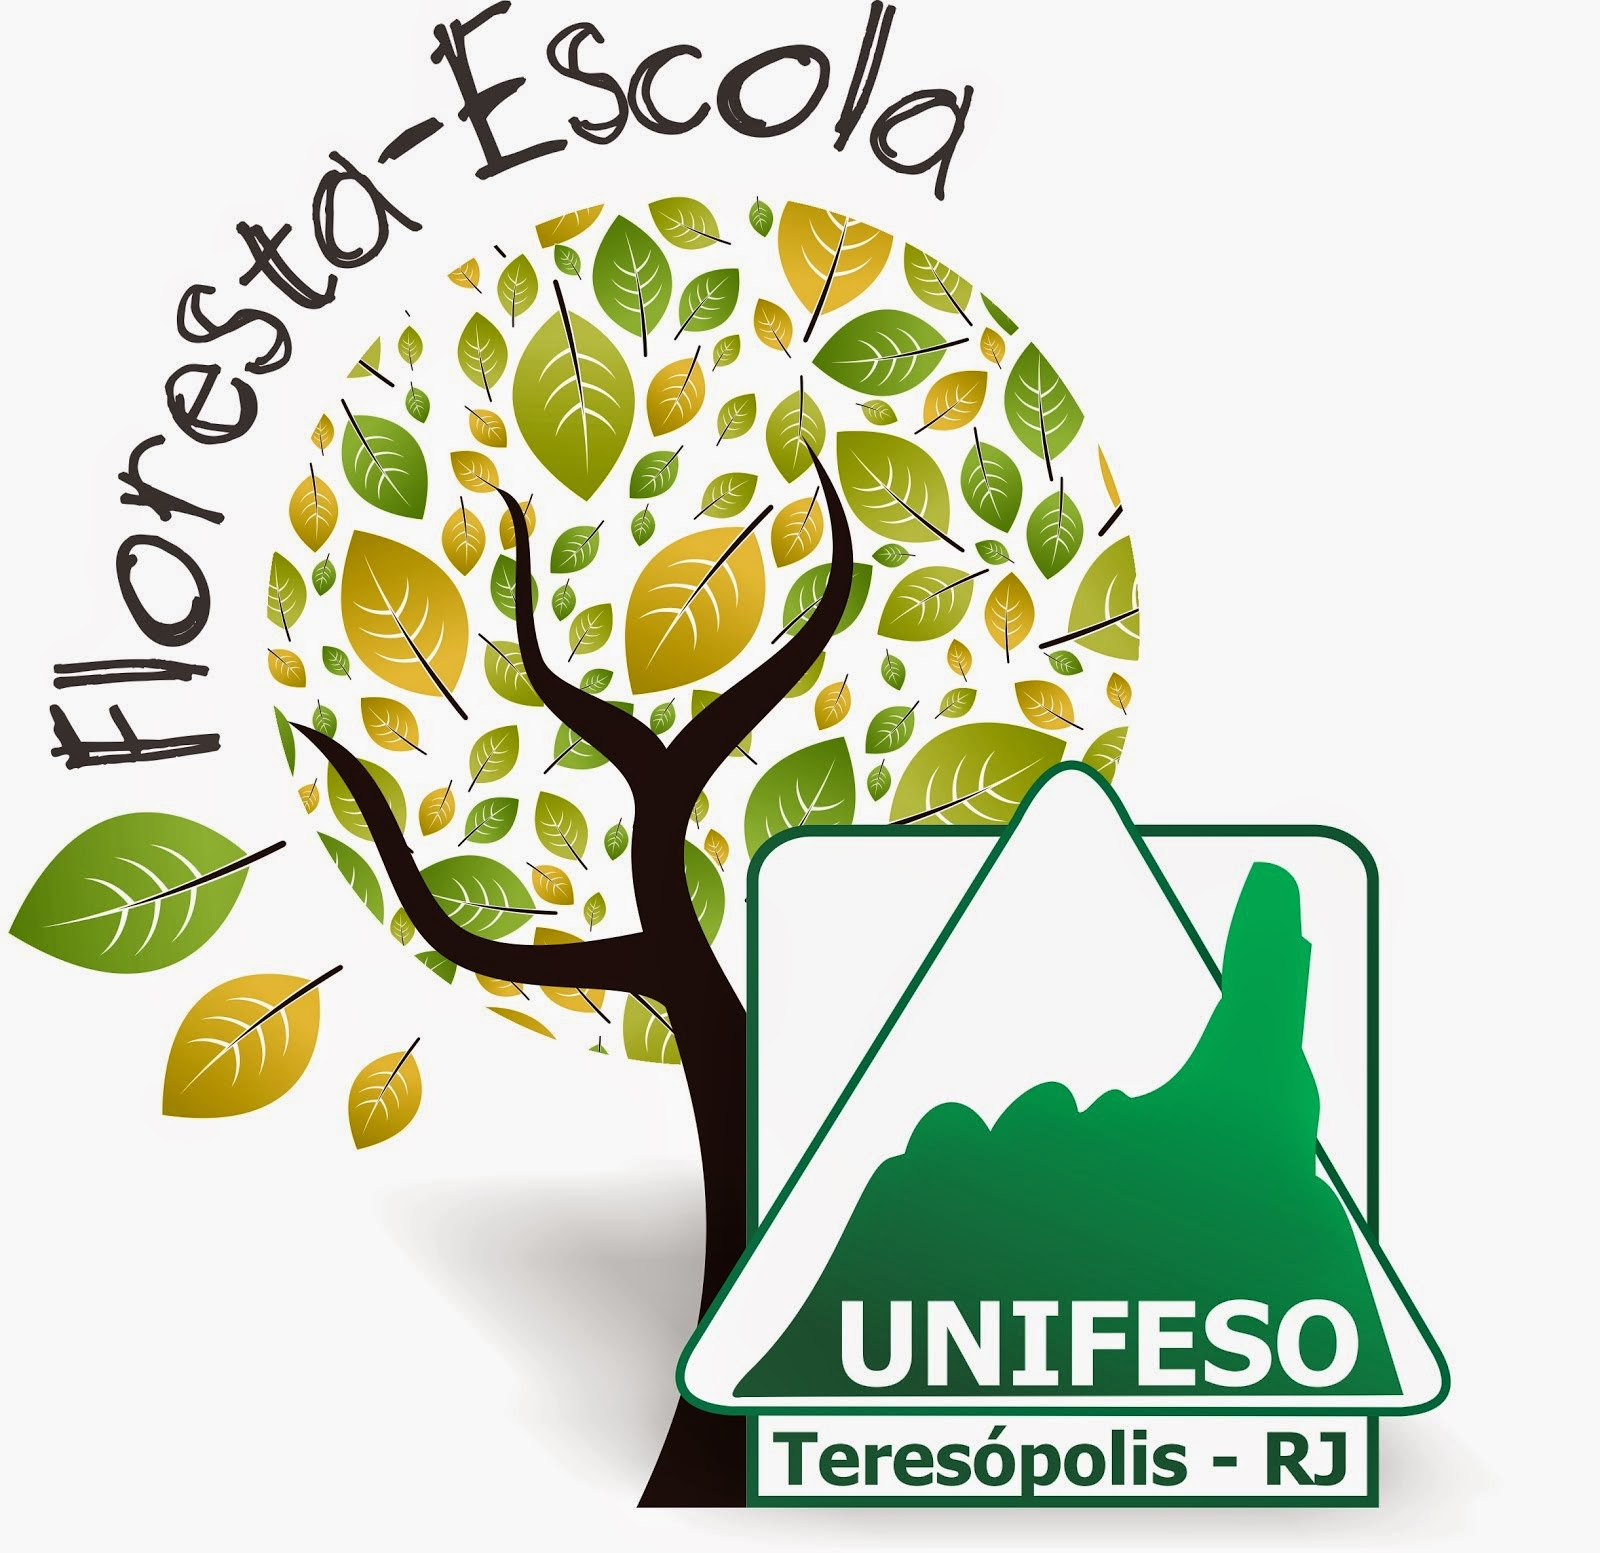 FLORESTA-ESCOLA DO UNIFESO